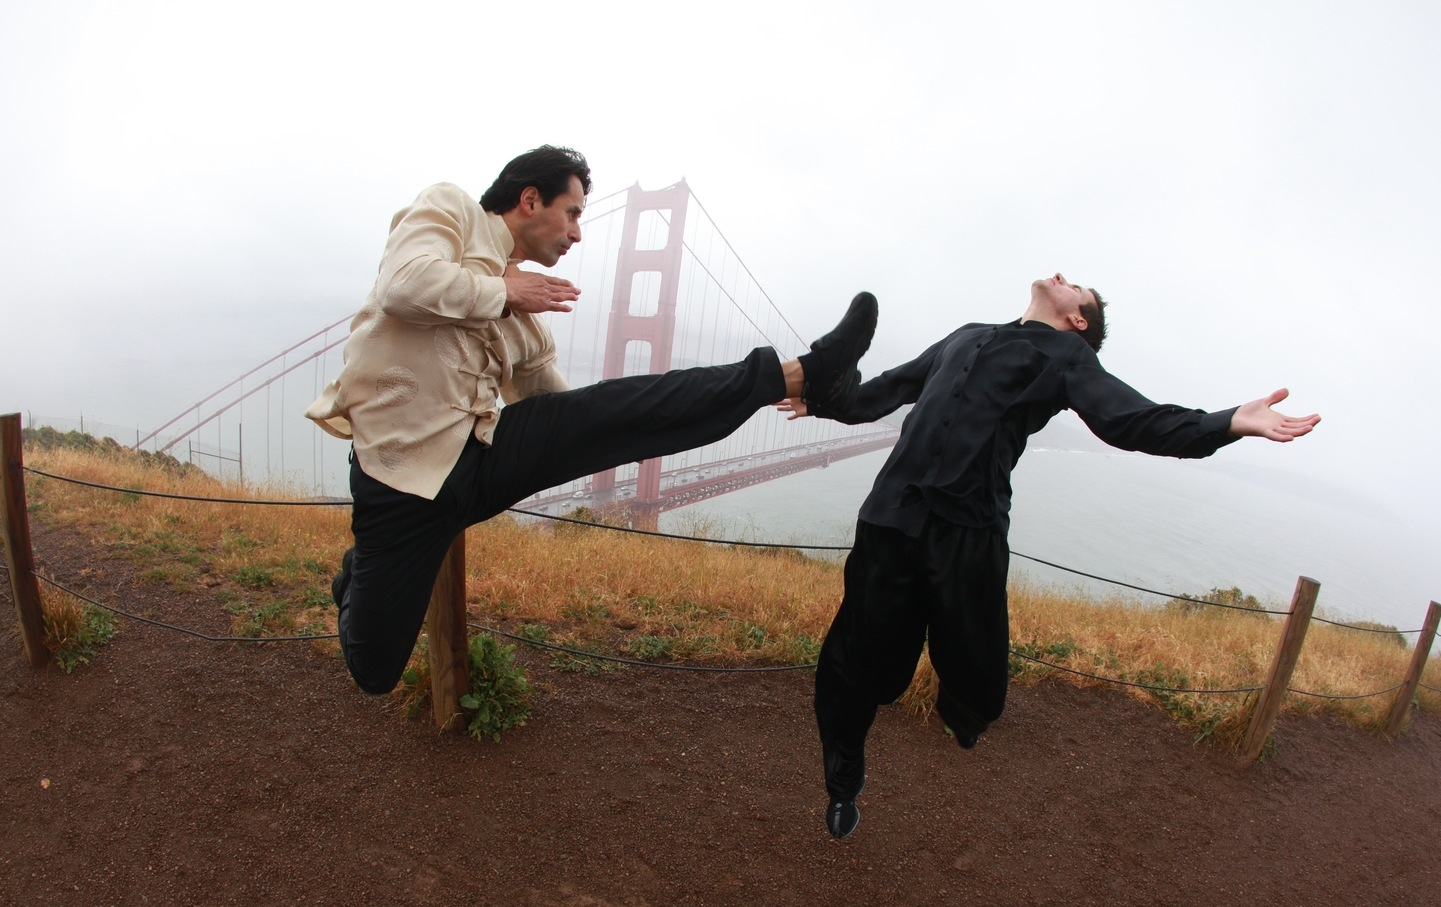 In action in front of the Golden Gate Bridge - San Francisco, CA